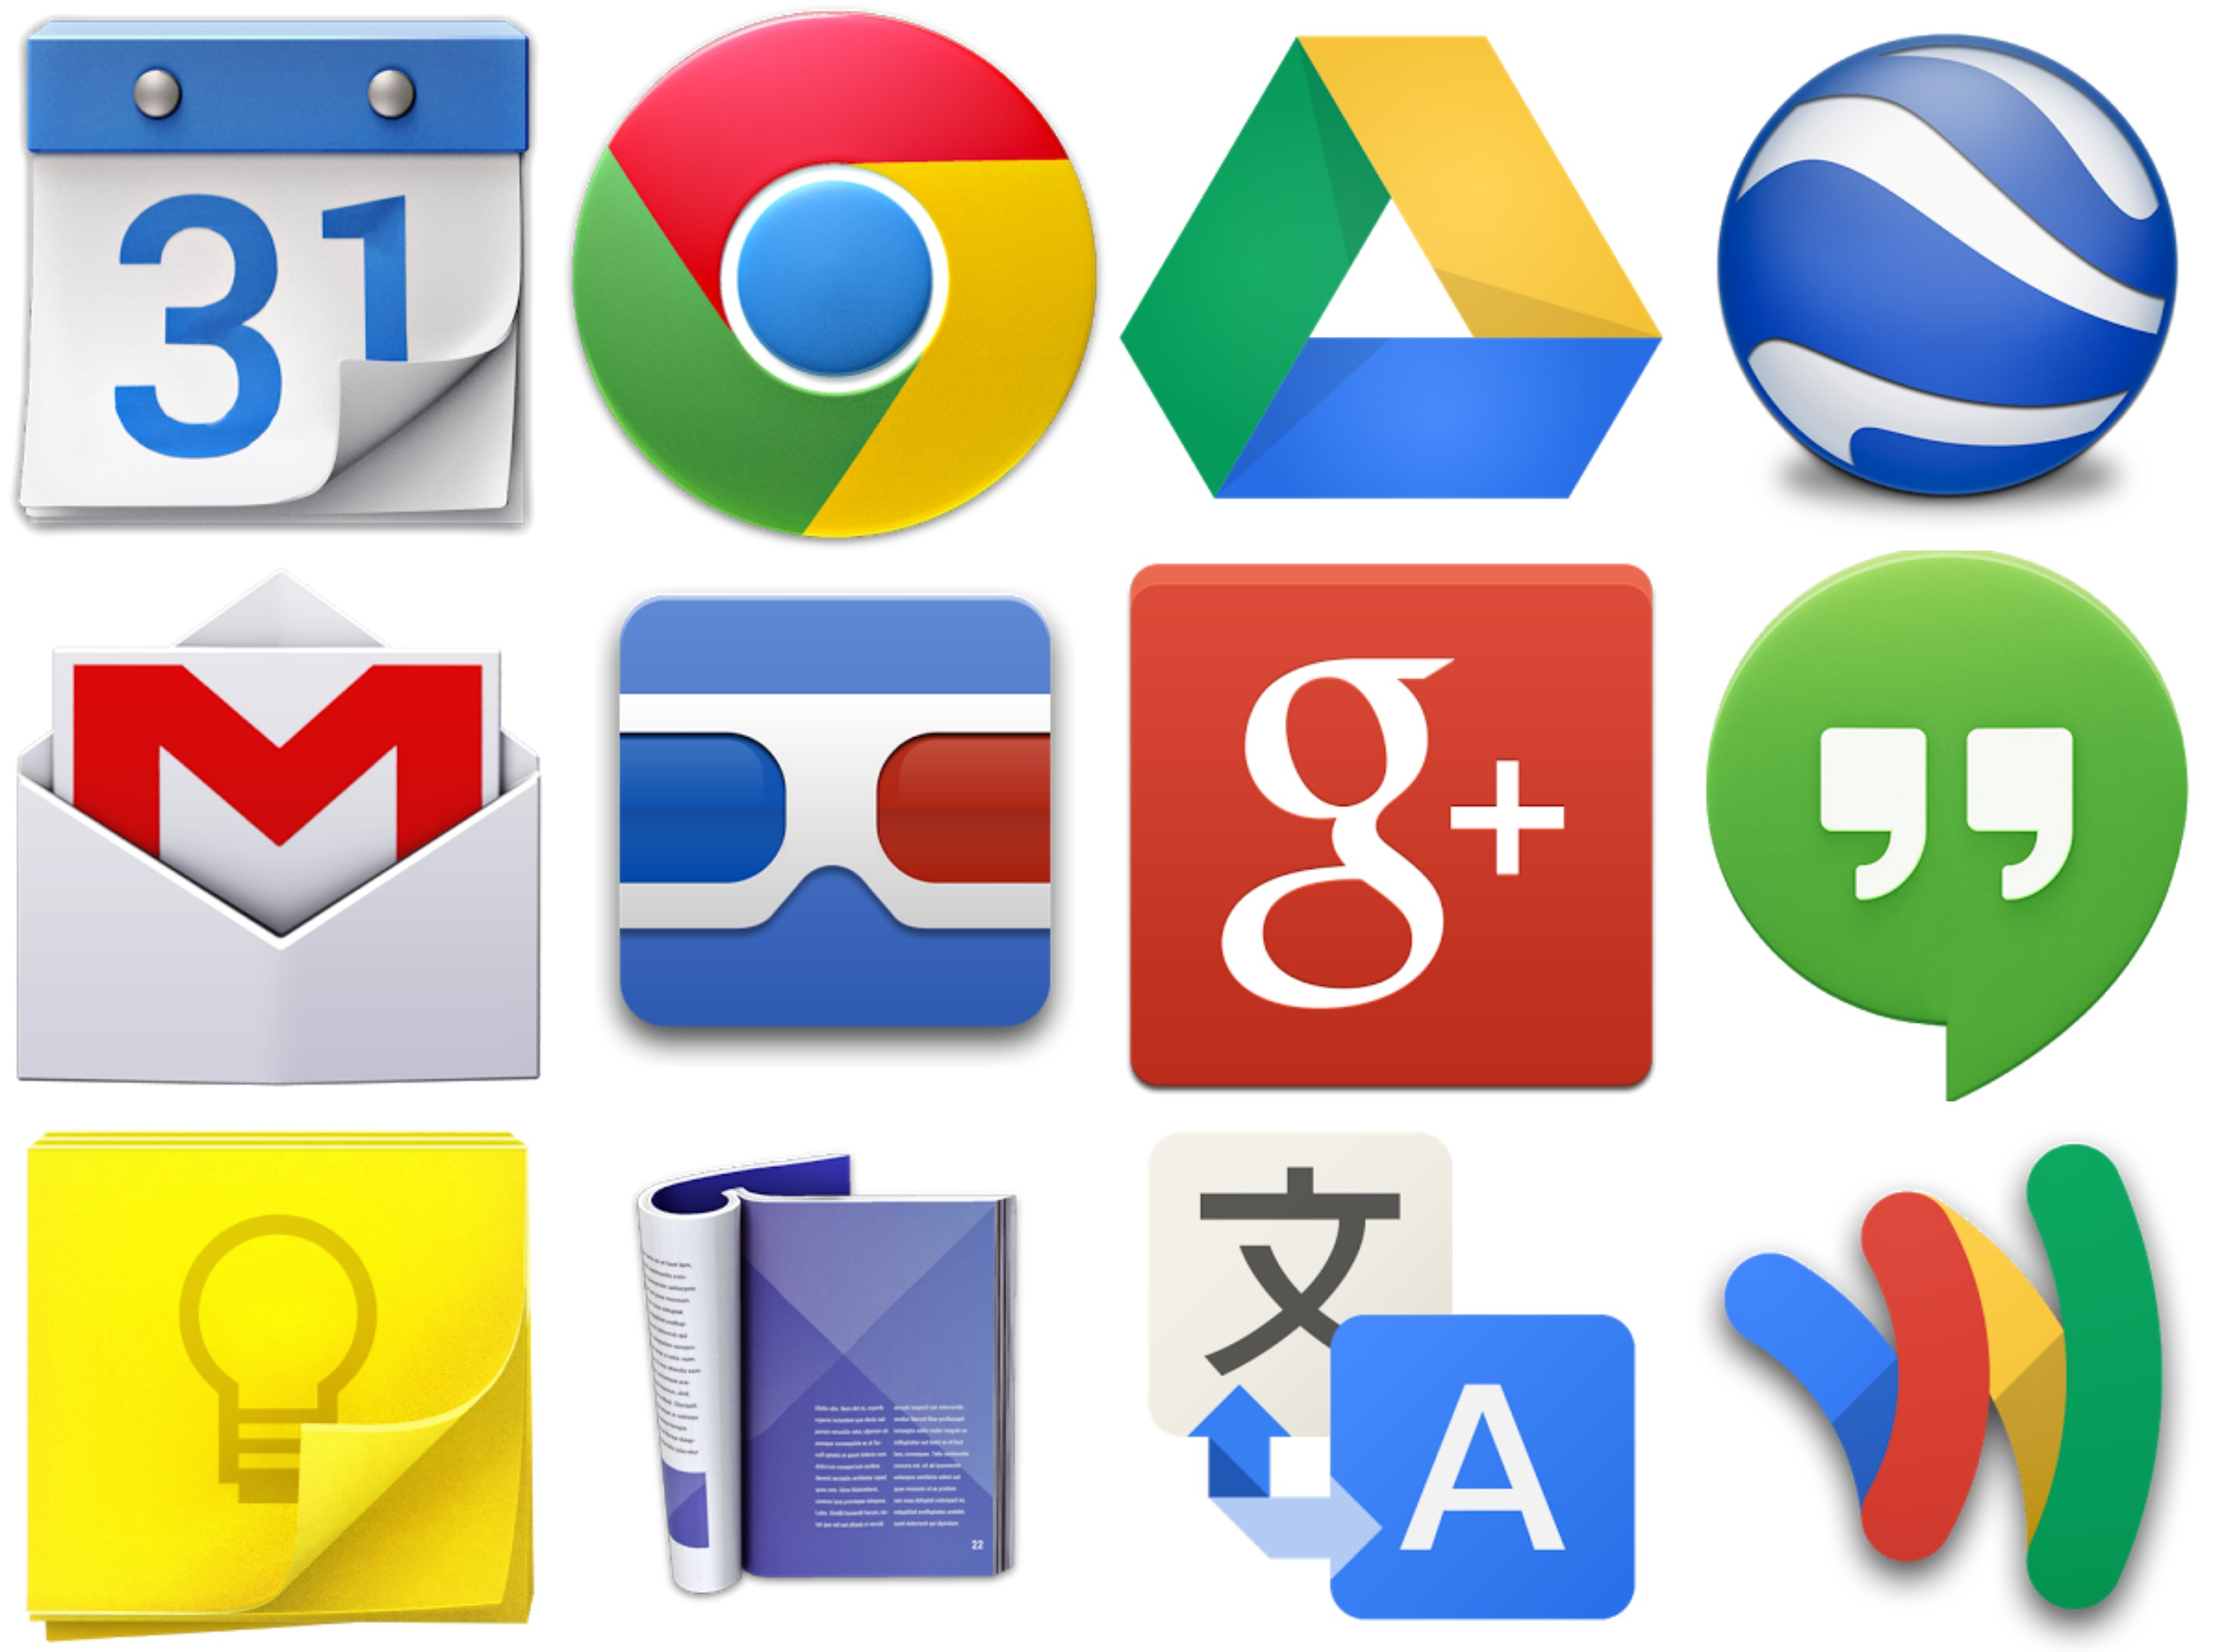 Something's happening: 12 Google apps were updated on Oct ... - photo#22